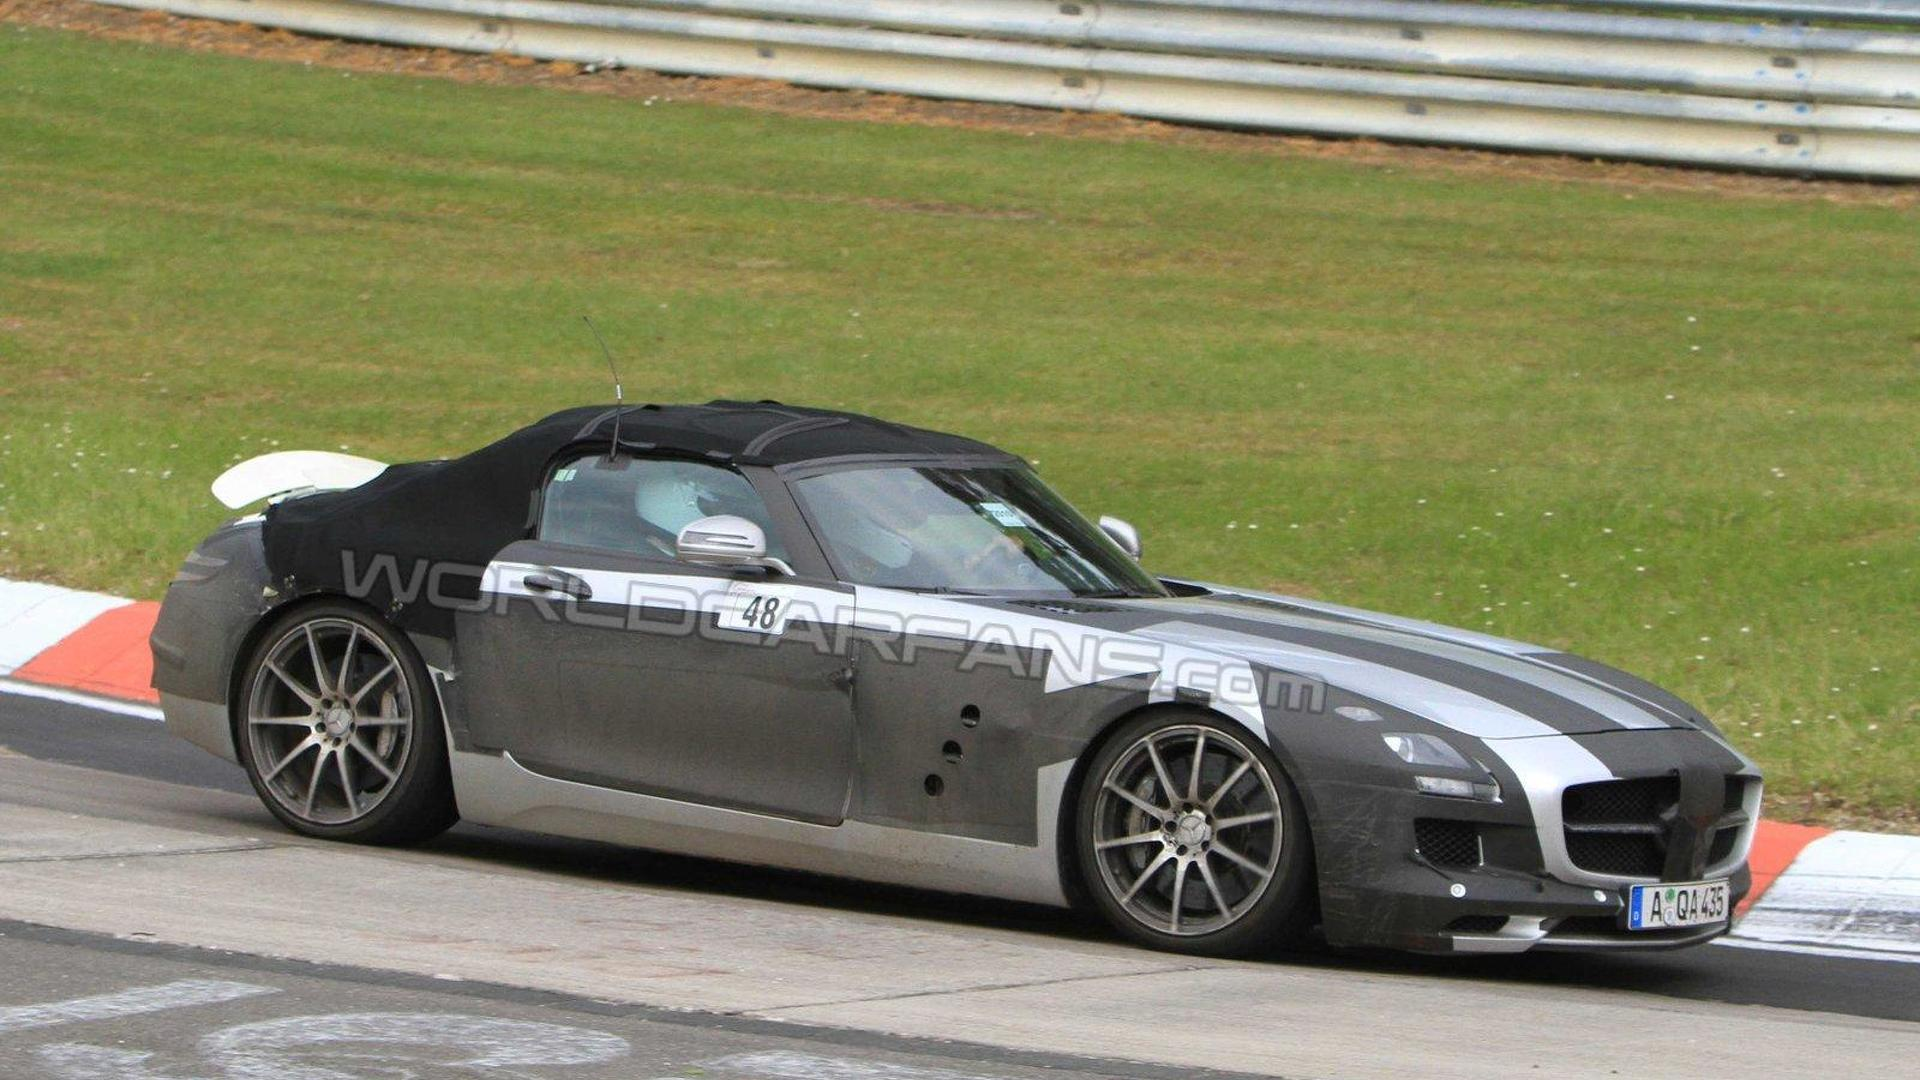 Mercedes benz sls amg roadster set for 2011 frankfurt debut publicscrutiny